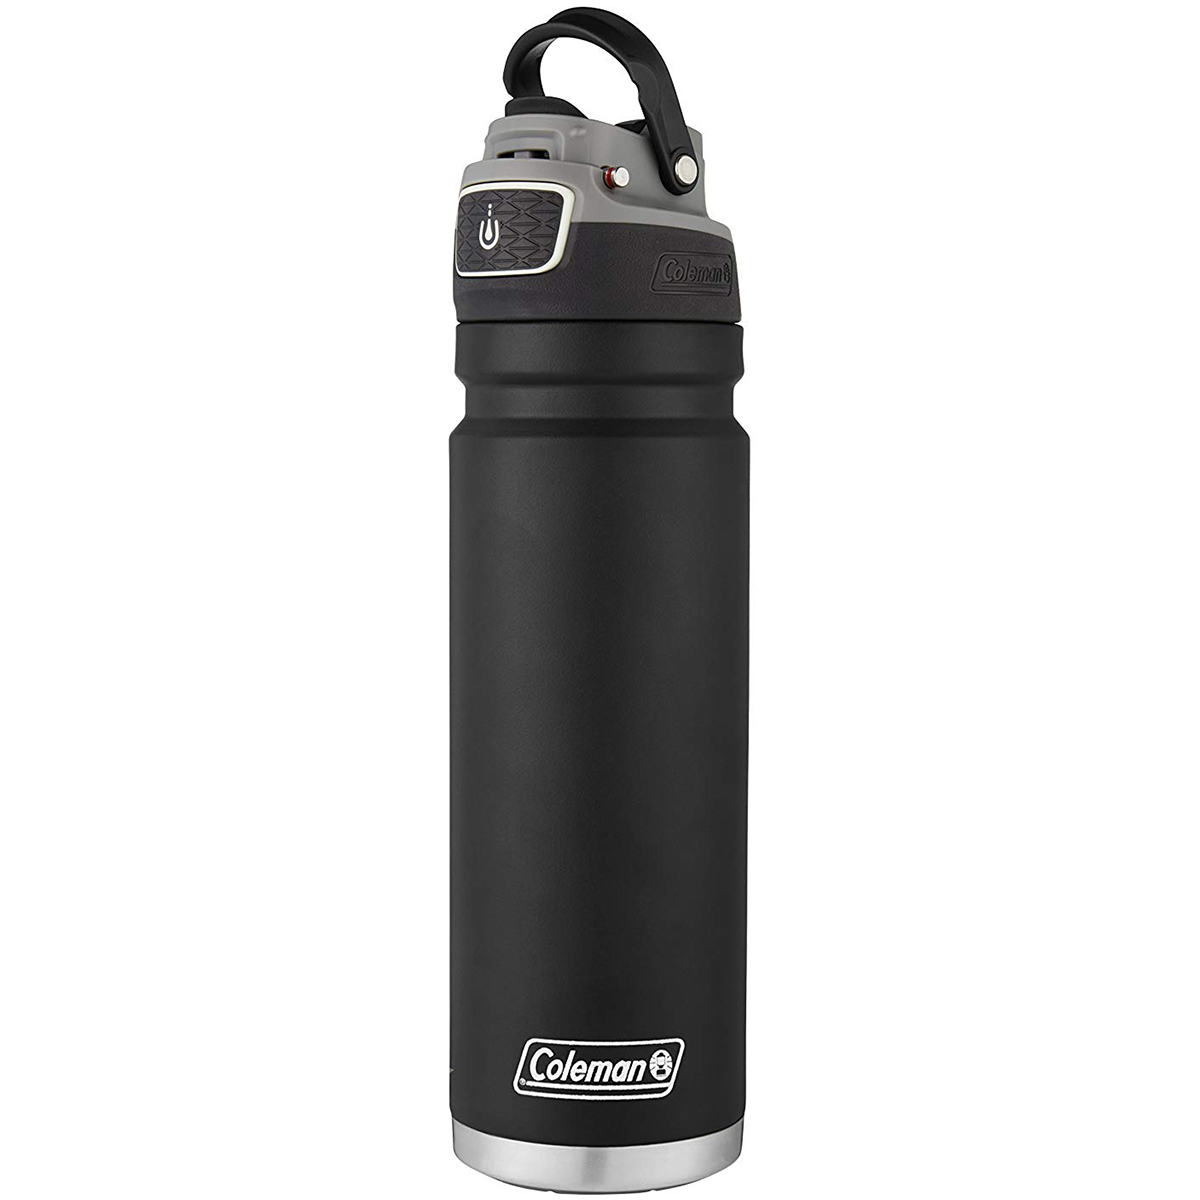 Coleman-24-oz-Free-Flow-Autoseal-Insulated-Stainless-Steel-Water-Bottle thumbnail 5